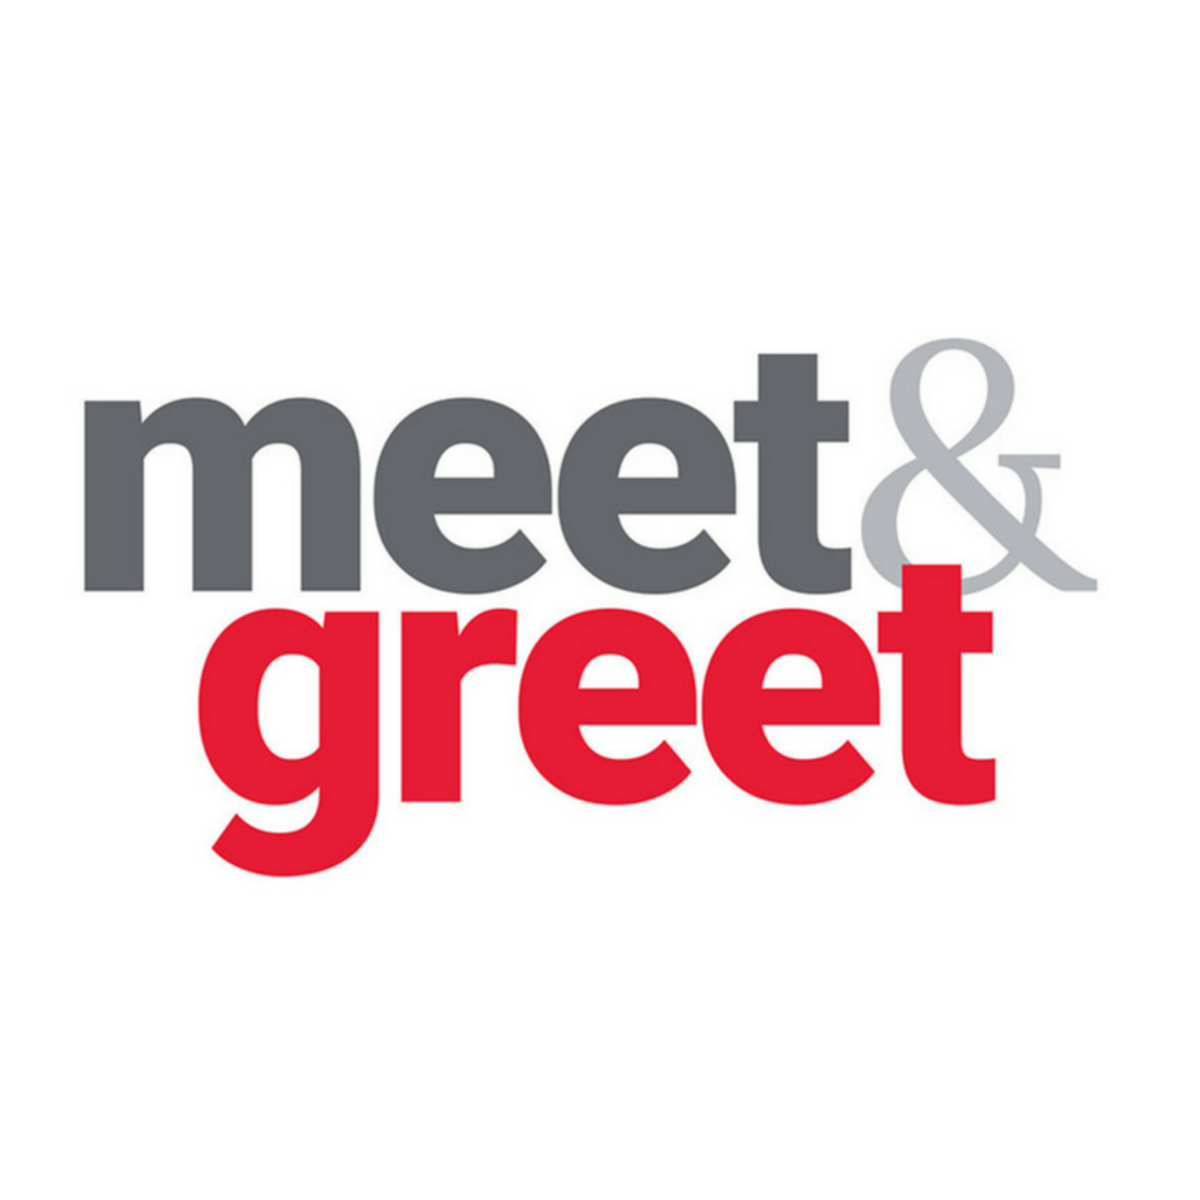 10-reasons-churches-should-ditch-the-meet-and-greet